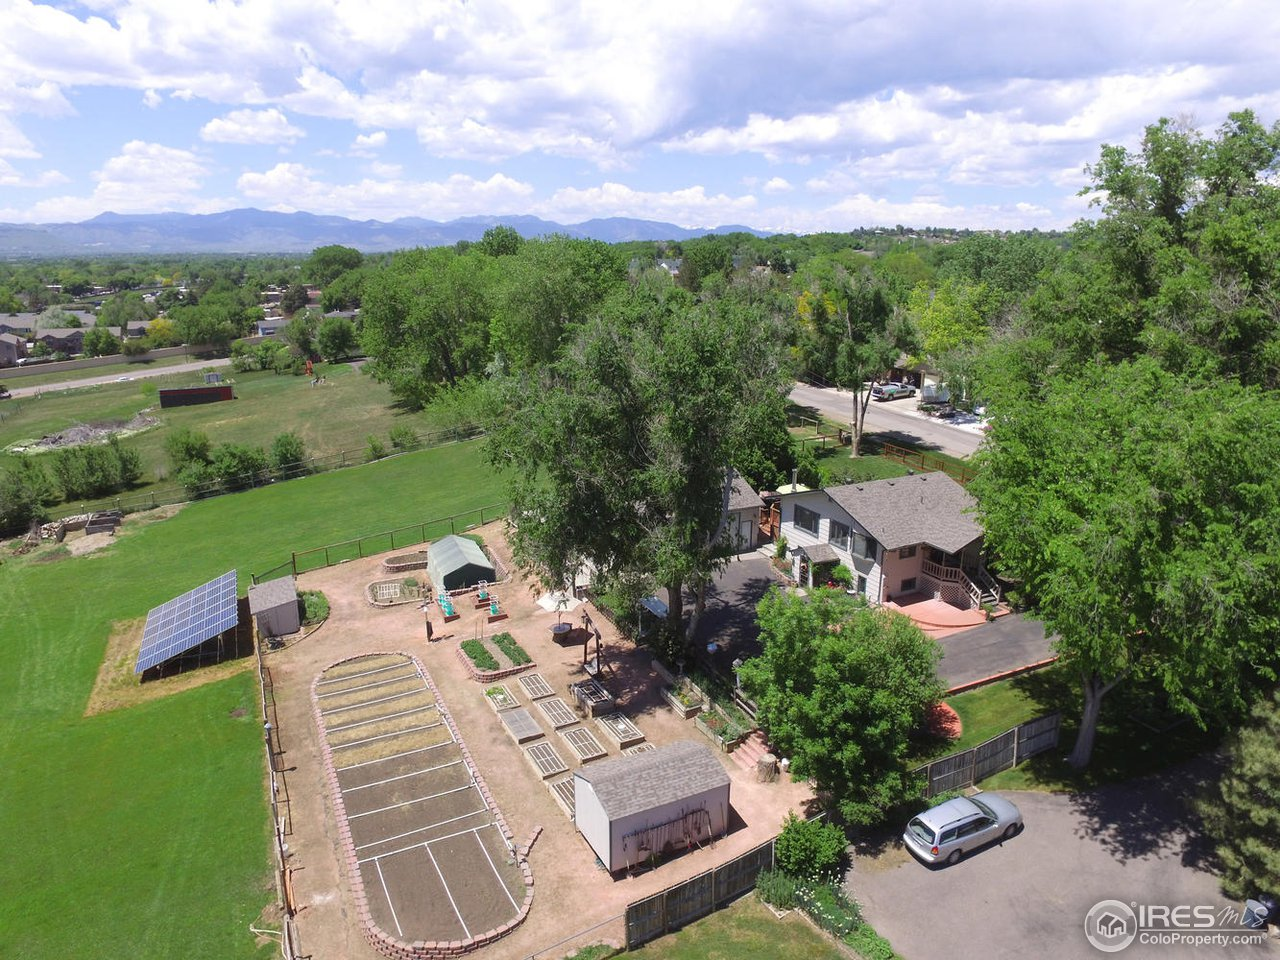 7100 W 62nd Ave, Arvada CO 80003